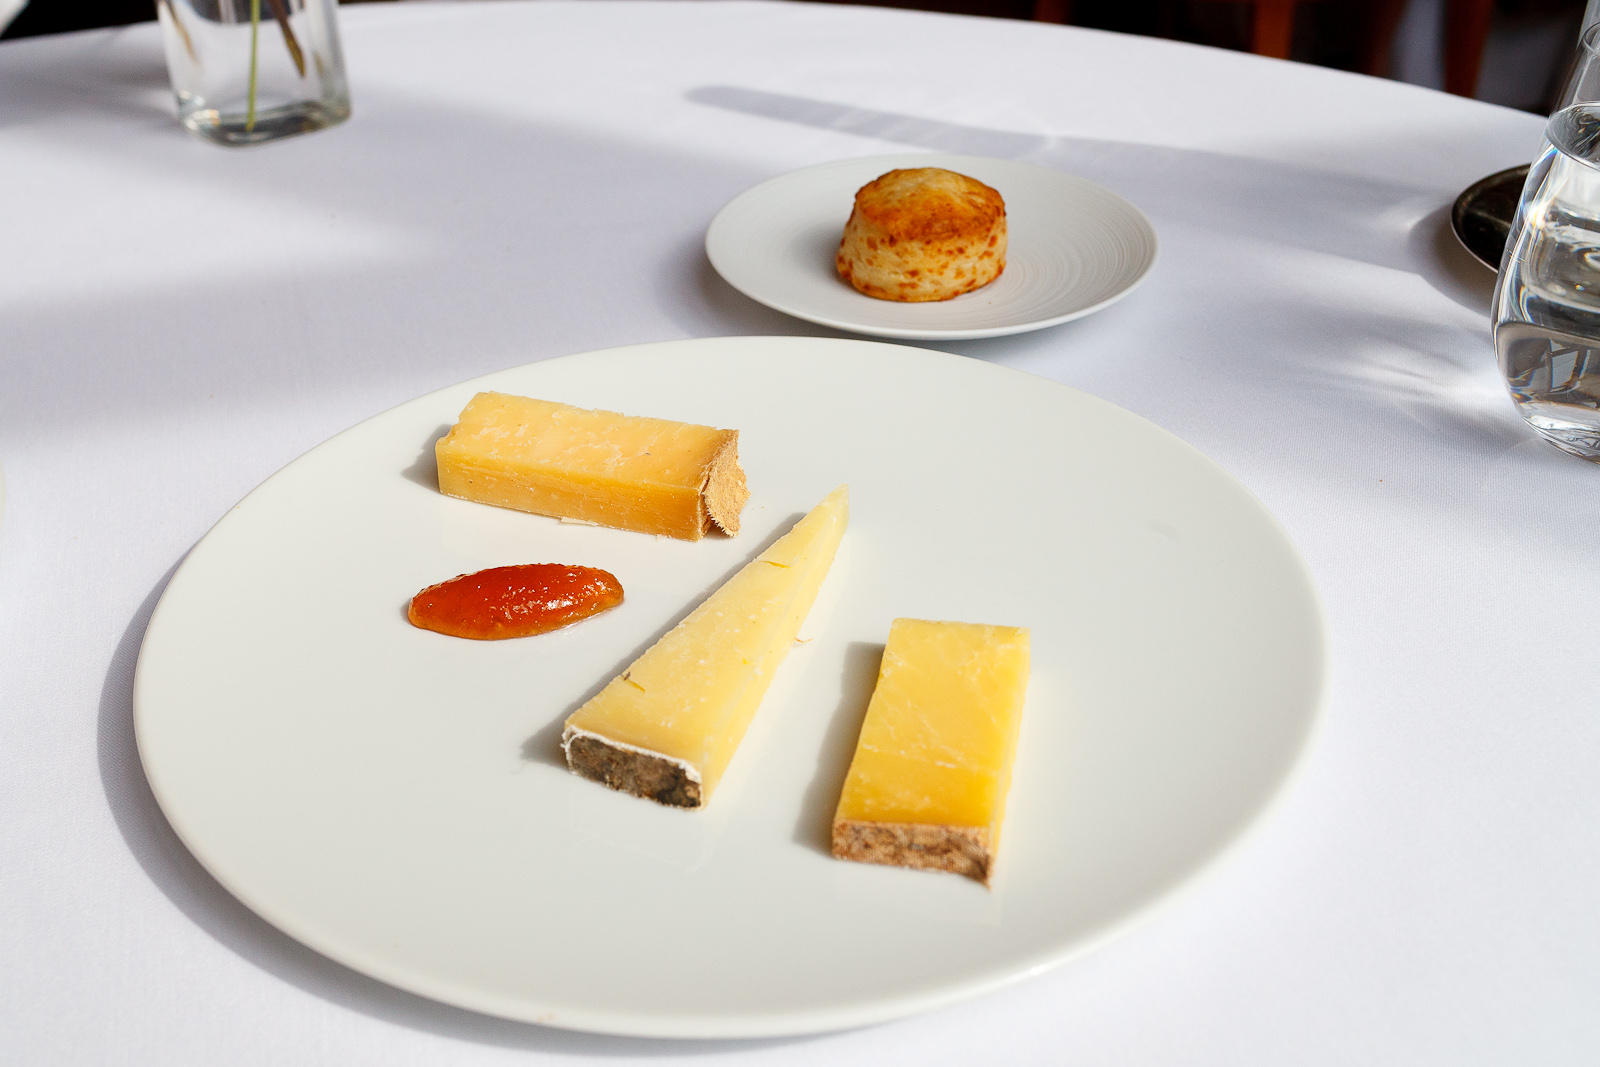 4th Course: Cheddar, clouthbound cabot, bandaged cheddar, Montgomery cheddar with a cheddar biscuit